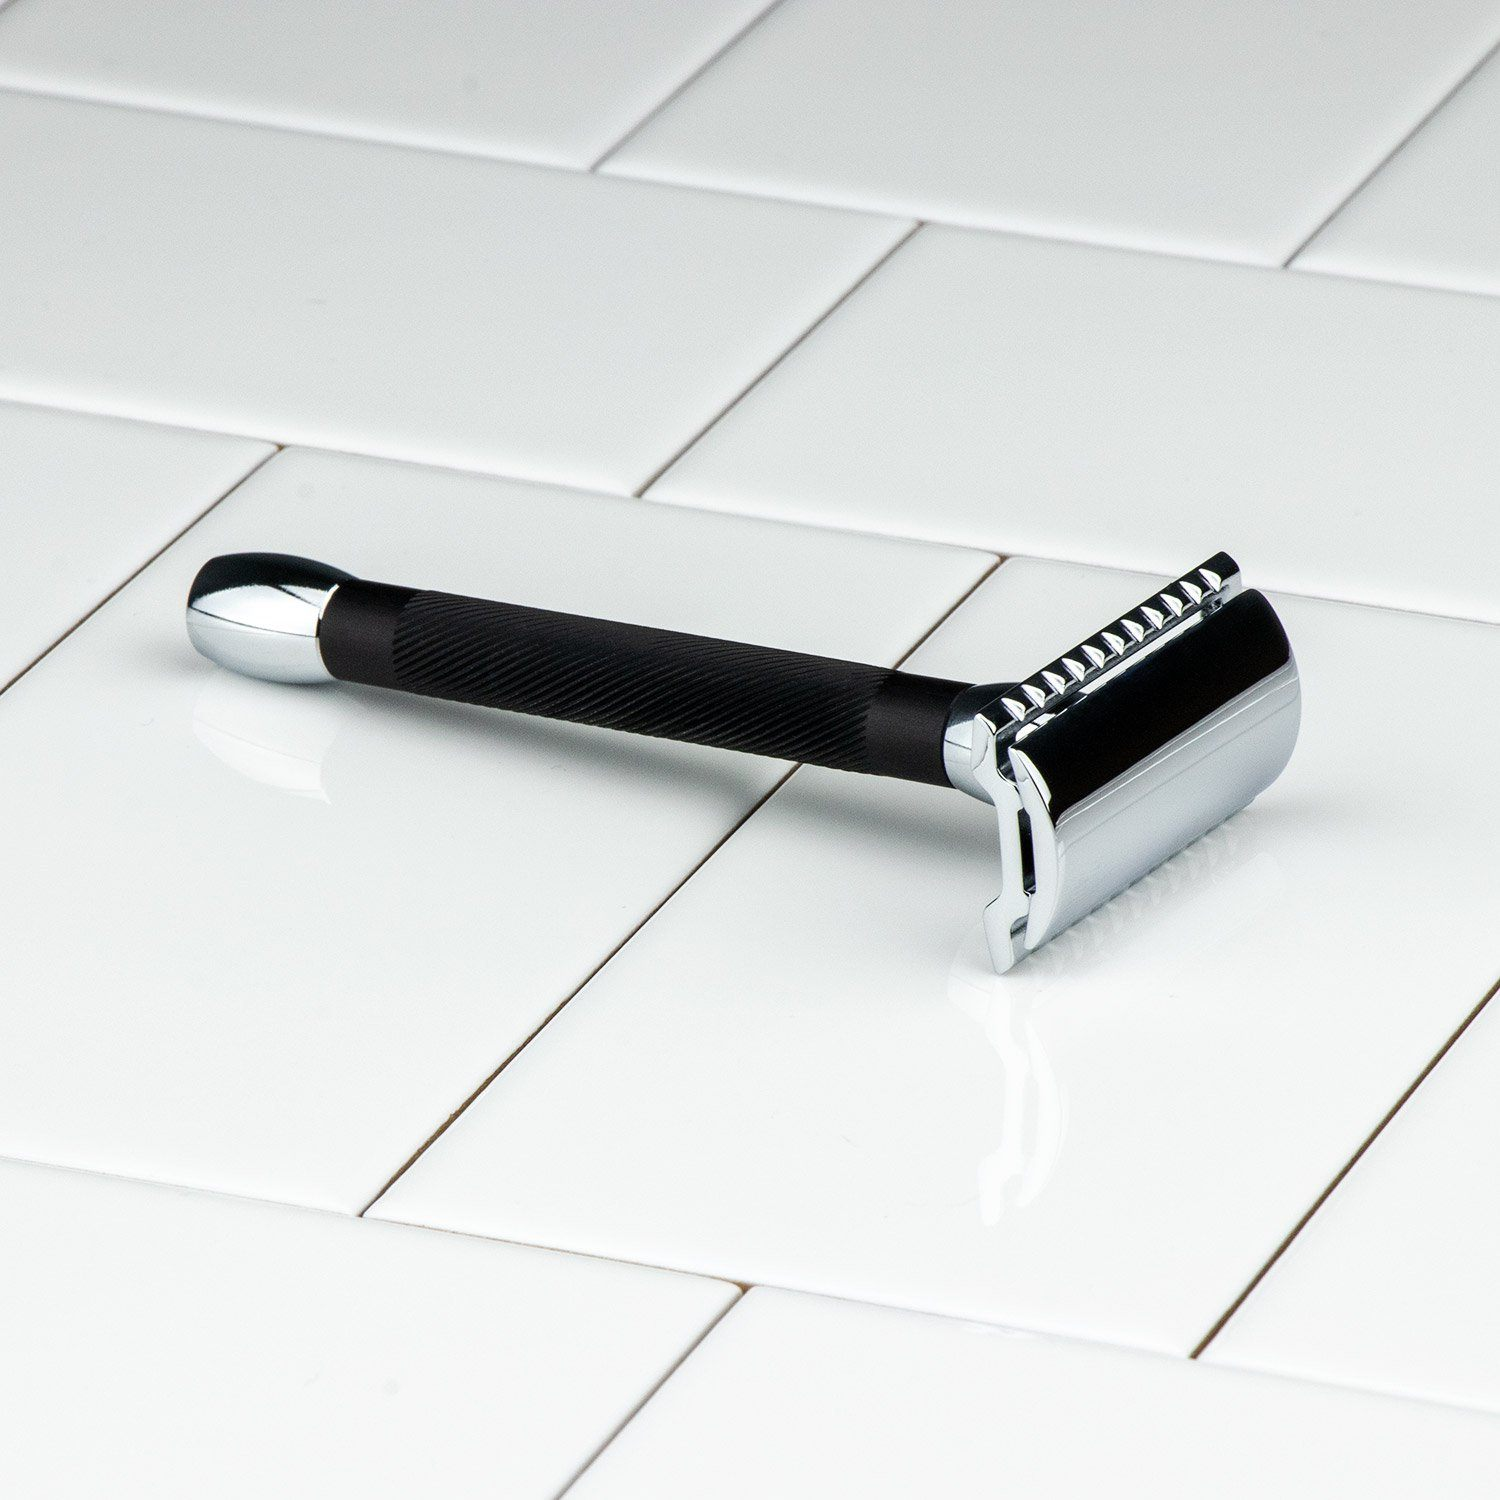 Merkur Black Handle Double Edge Safety Razor